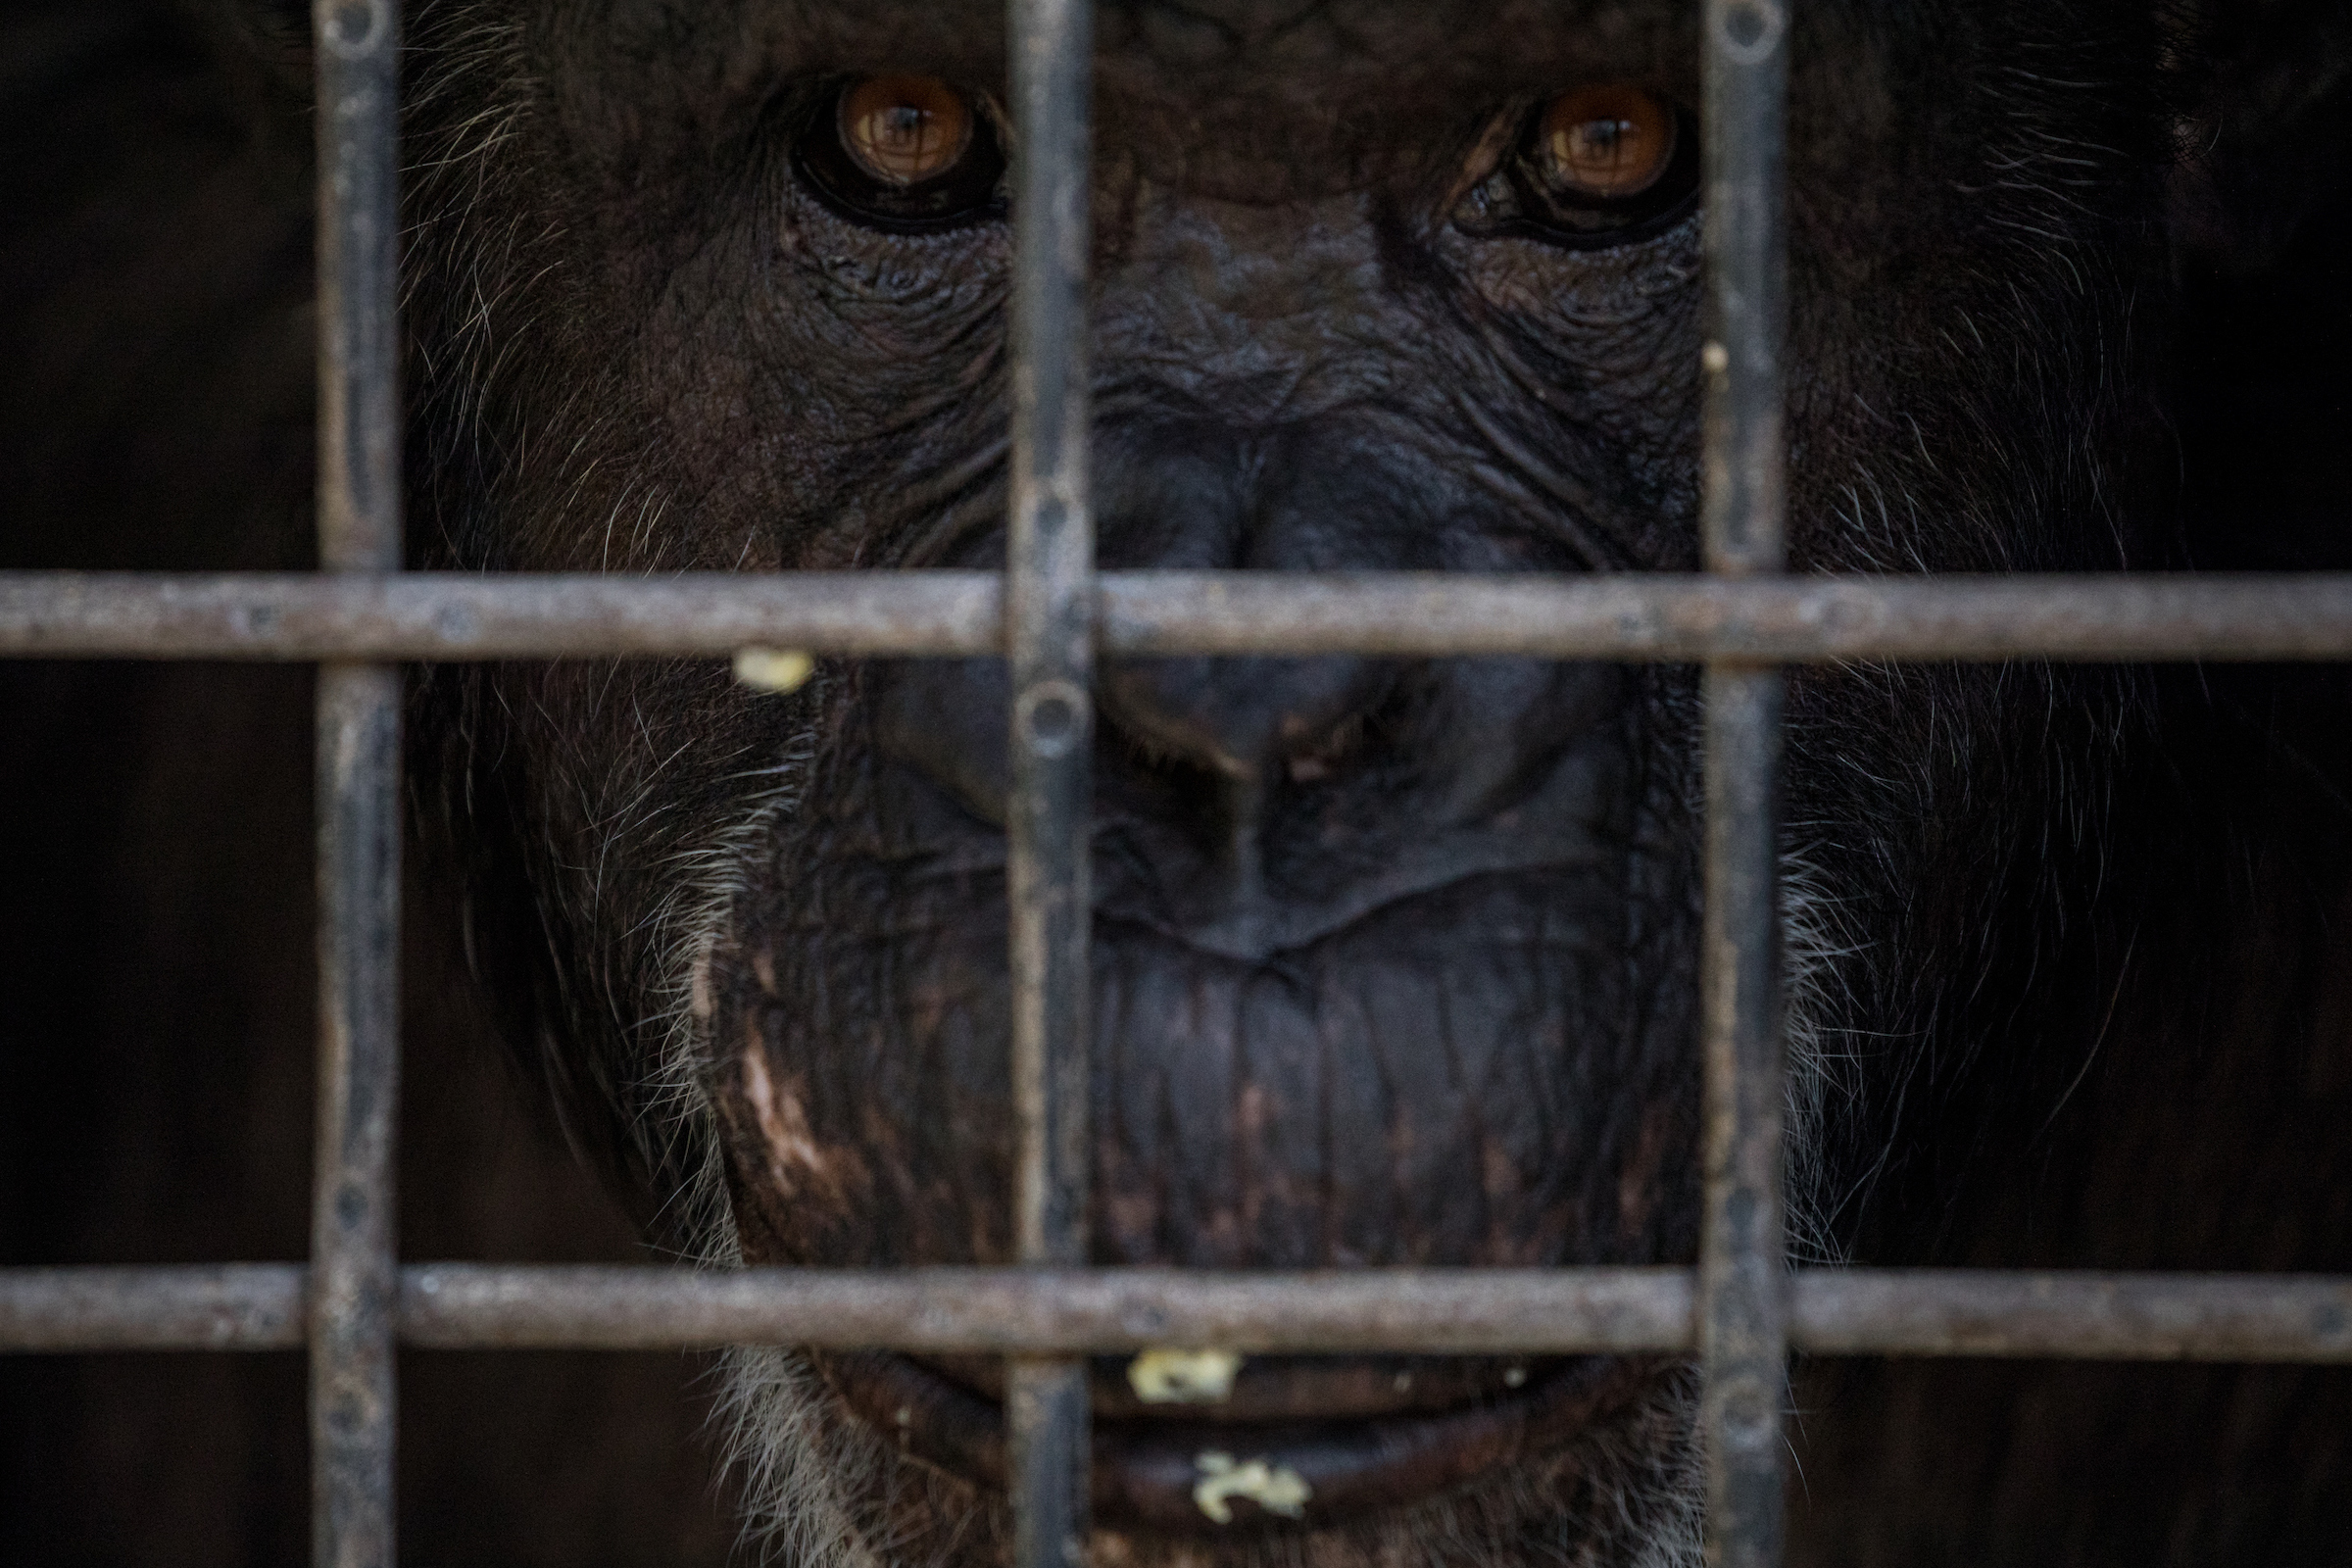 A close-up of a chimp peeking through the fence at the sanctuary.